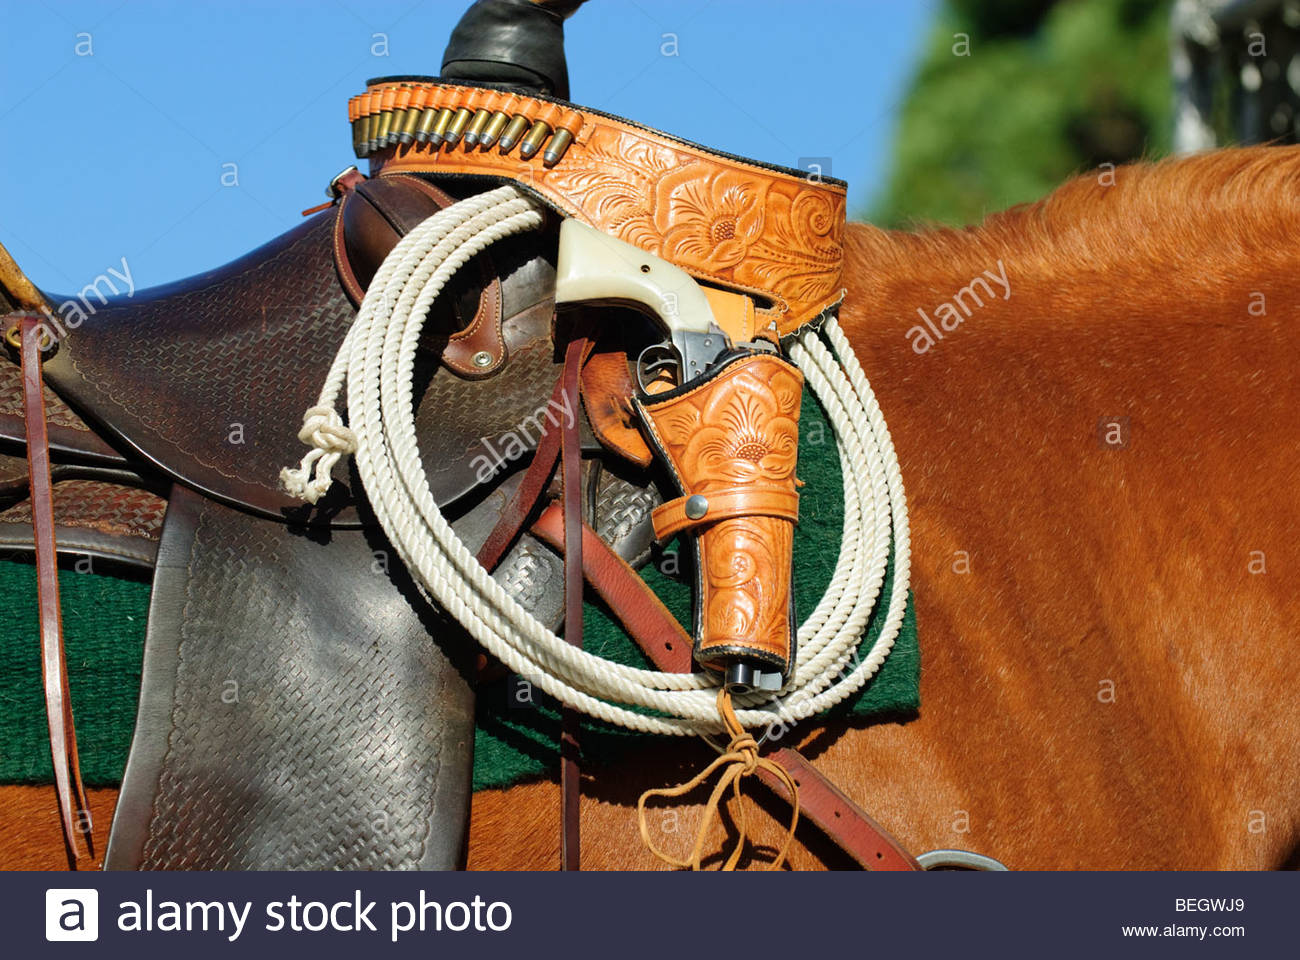 well worn saddle with lasso attached and gun holster slung over the saddle horn - Stock Image